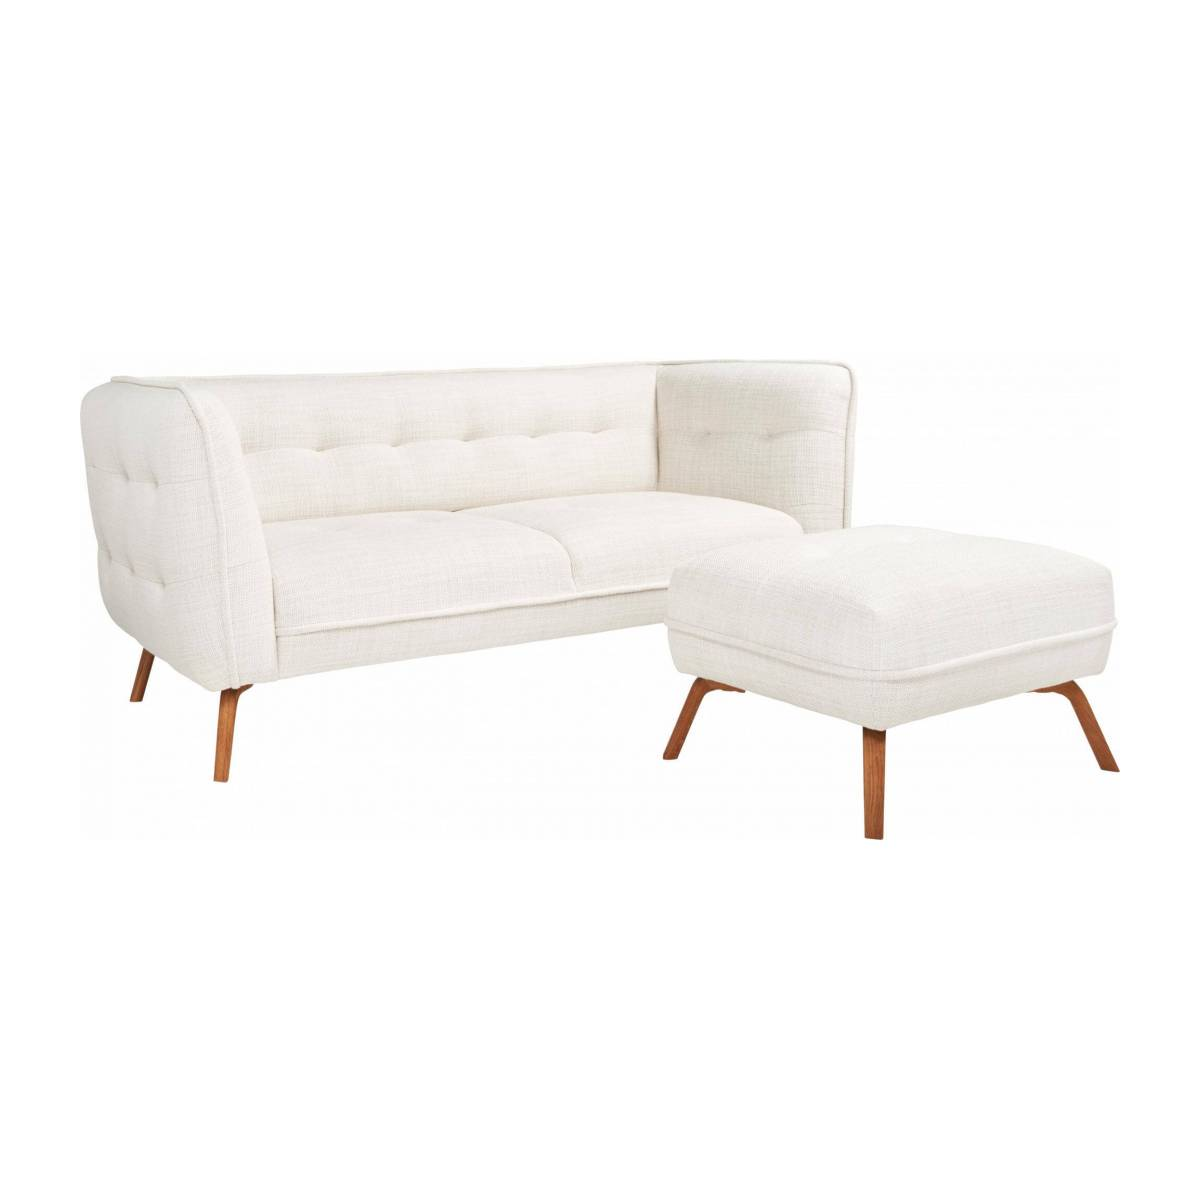 2 seater sofa in Fasoli fabric, snow white and oak legs n°9